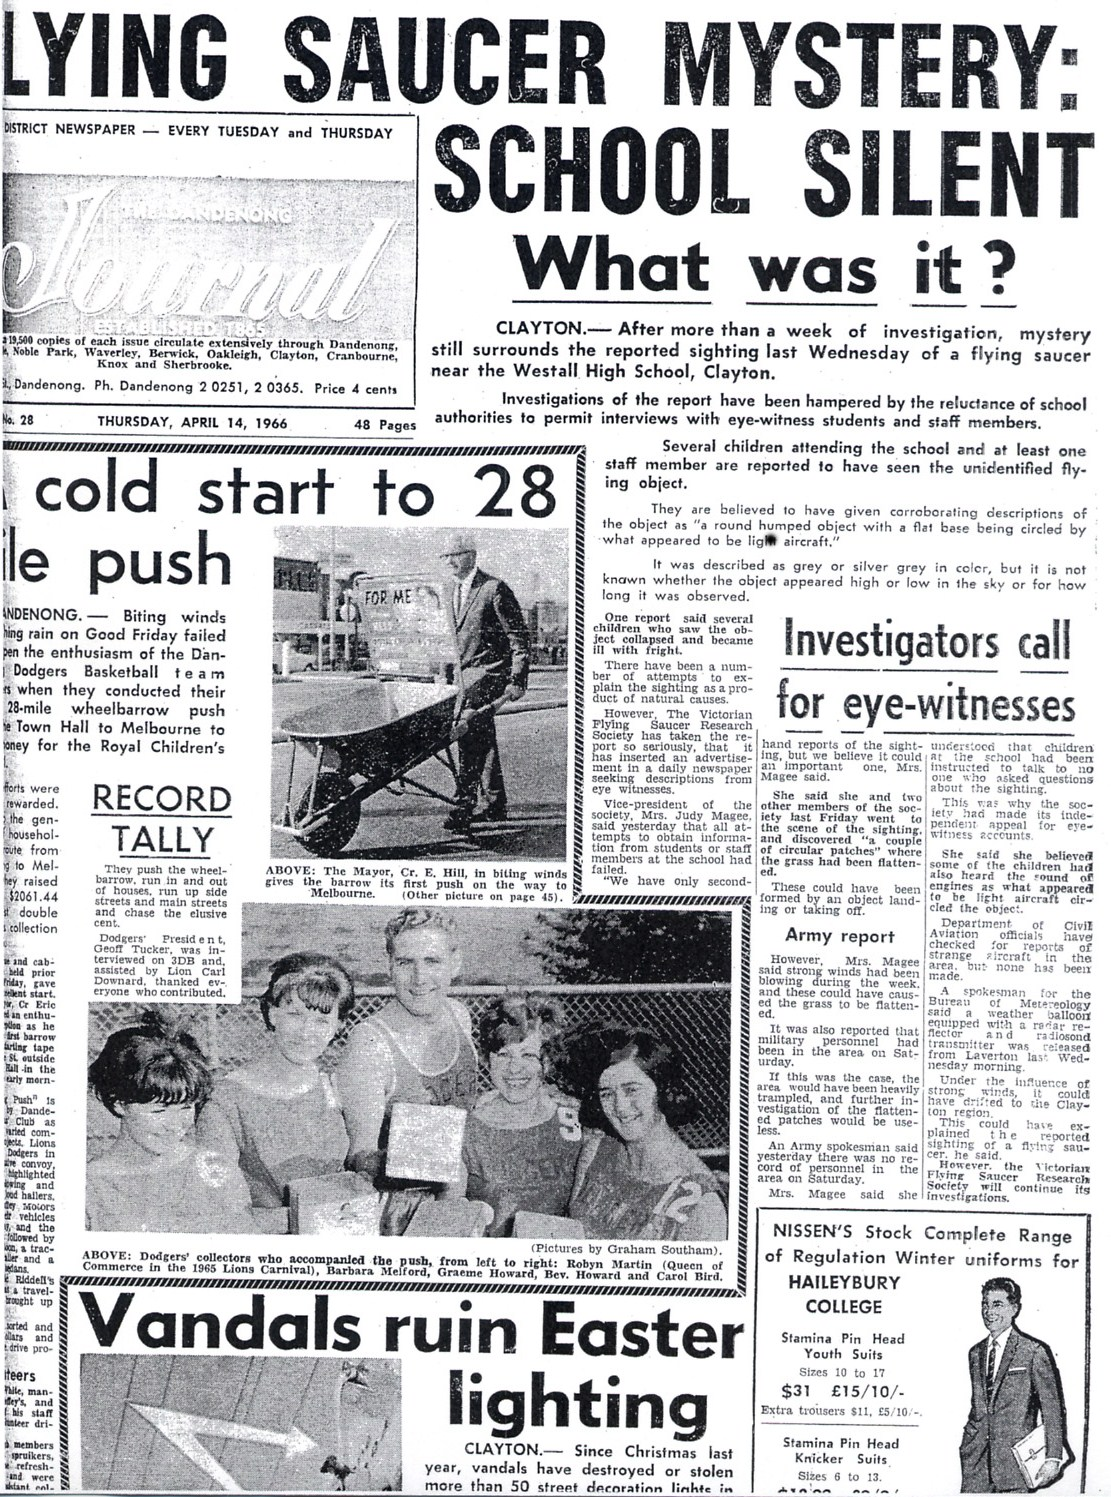 The_Dandenong_Journal_-_1966_14th_Apr_-_page_1